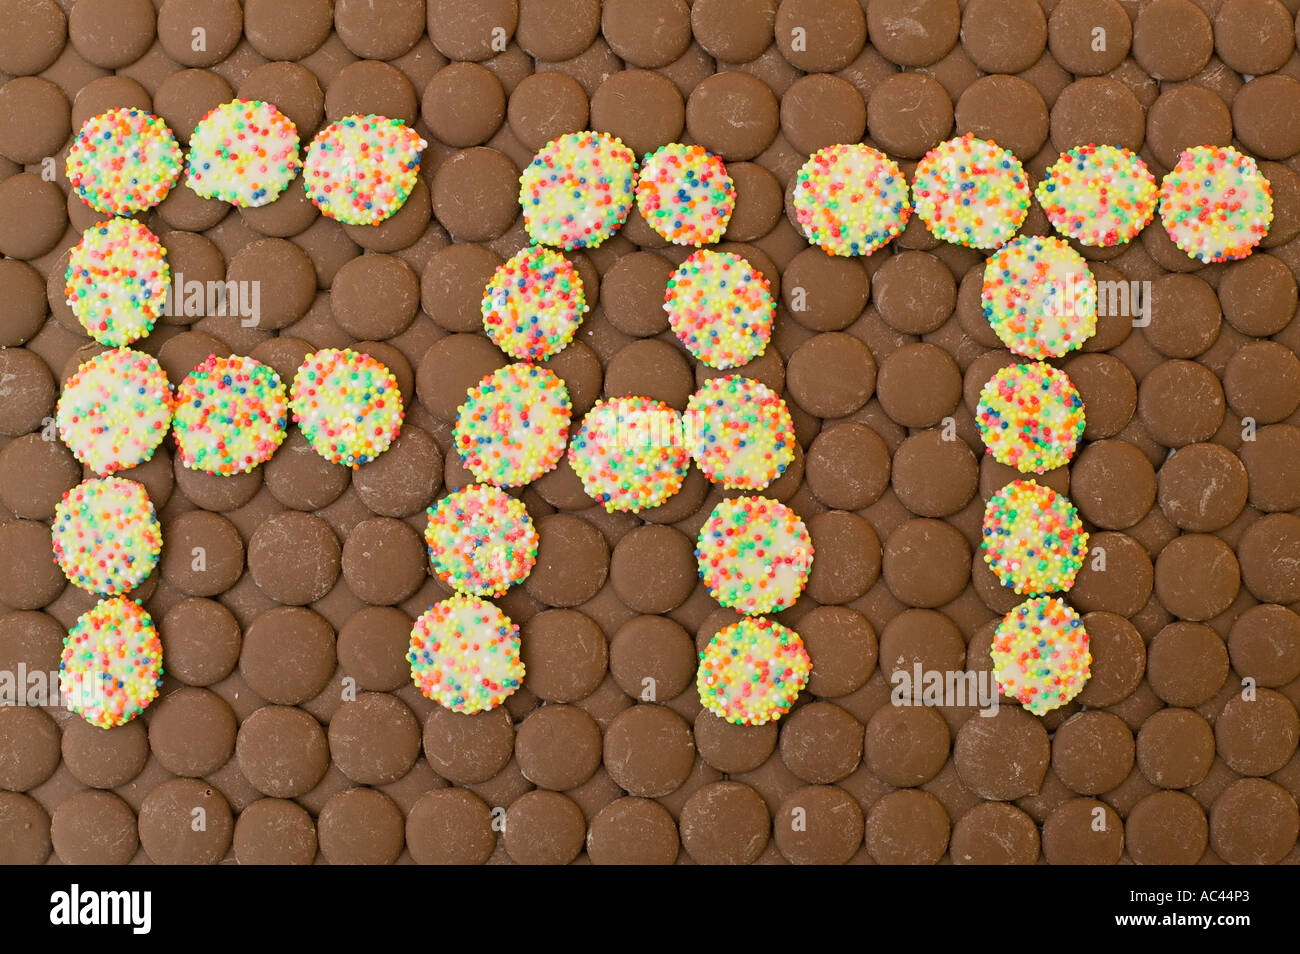 Chocolate Used Spell Out Word Stock Photos & Chocolate Used Spell ...